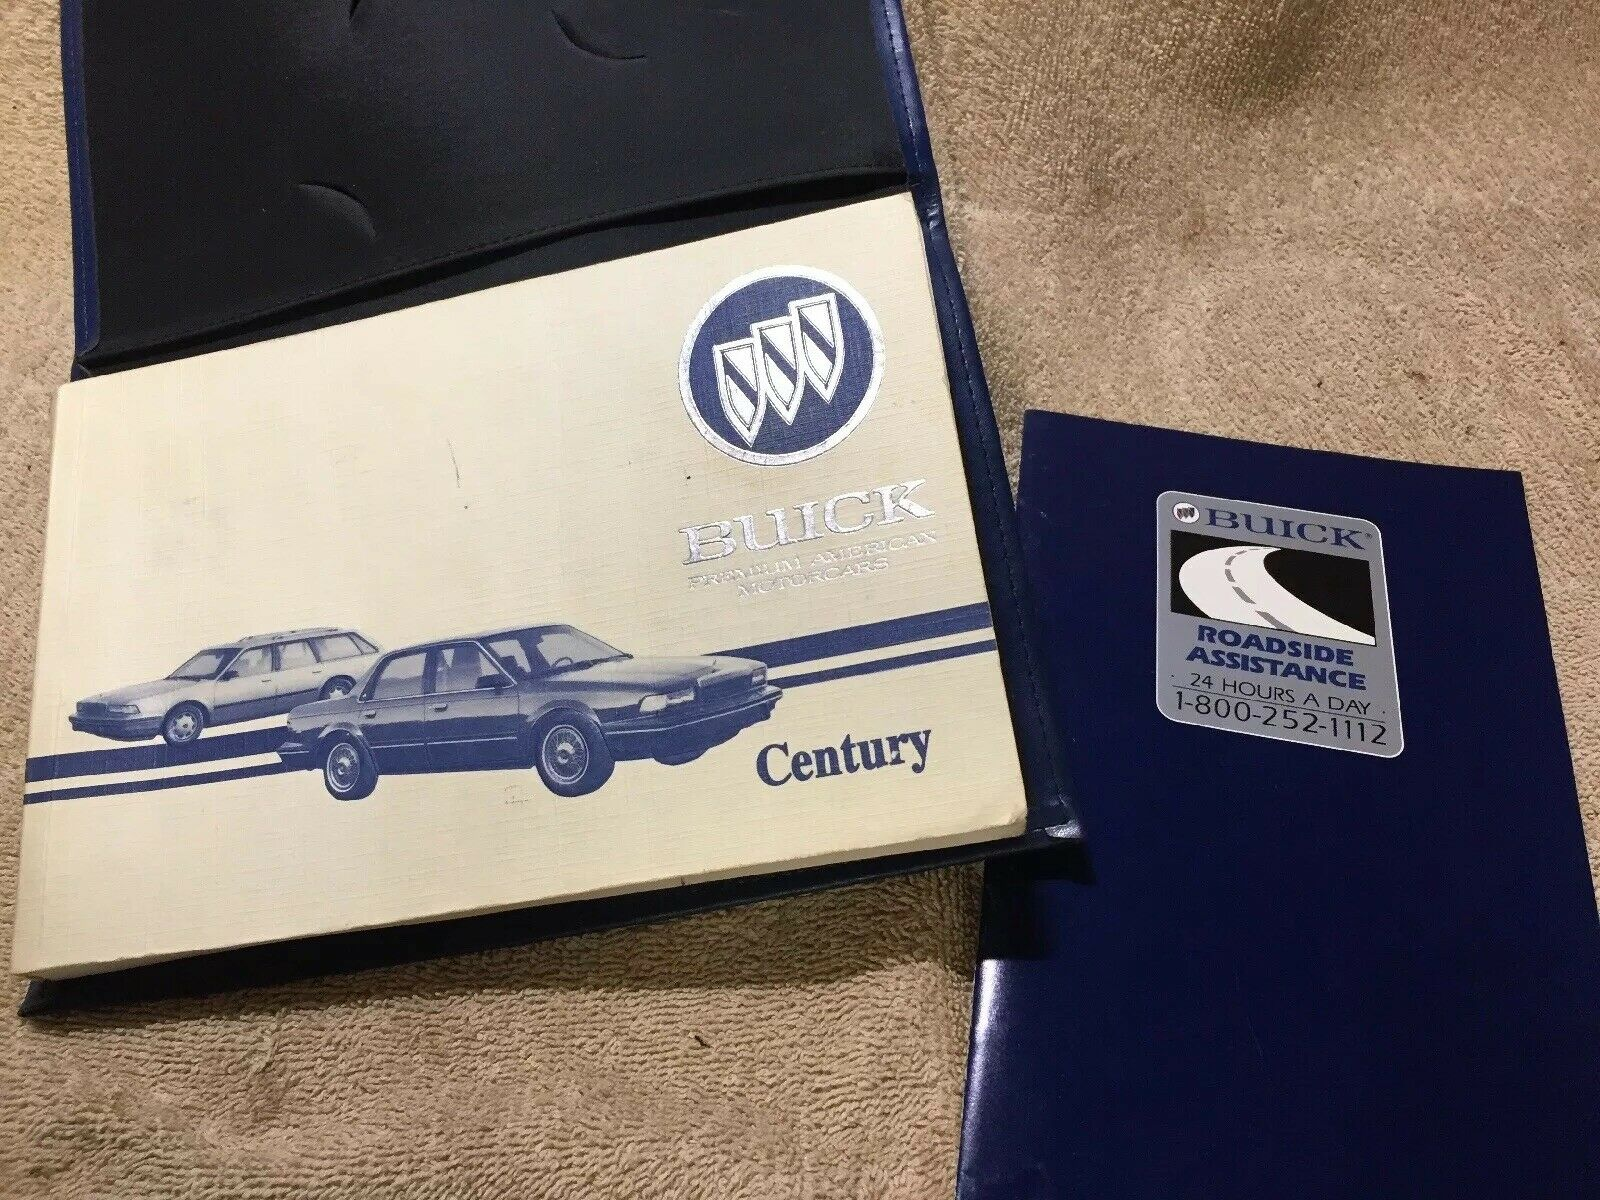 93 1993 Buick Century owners manual